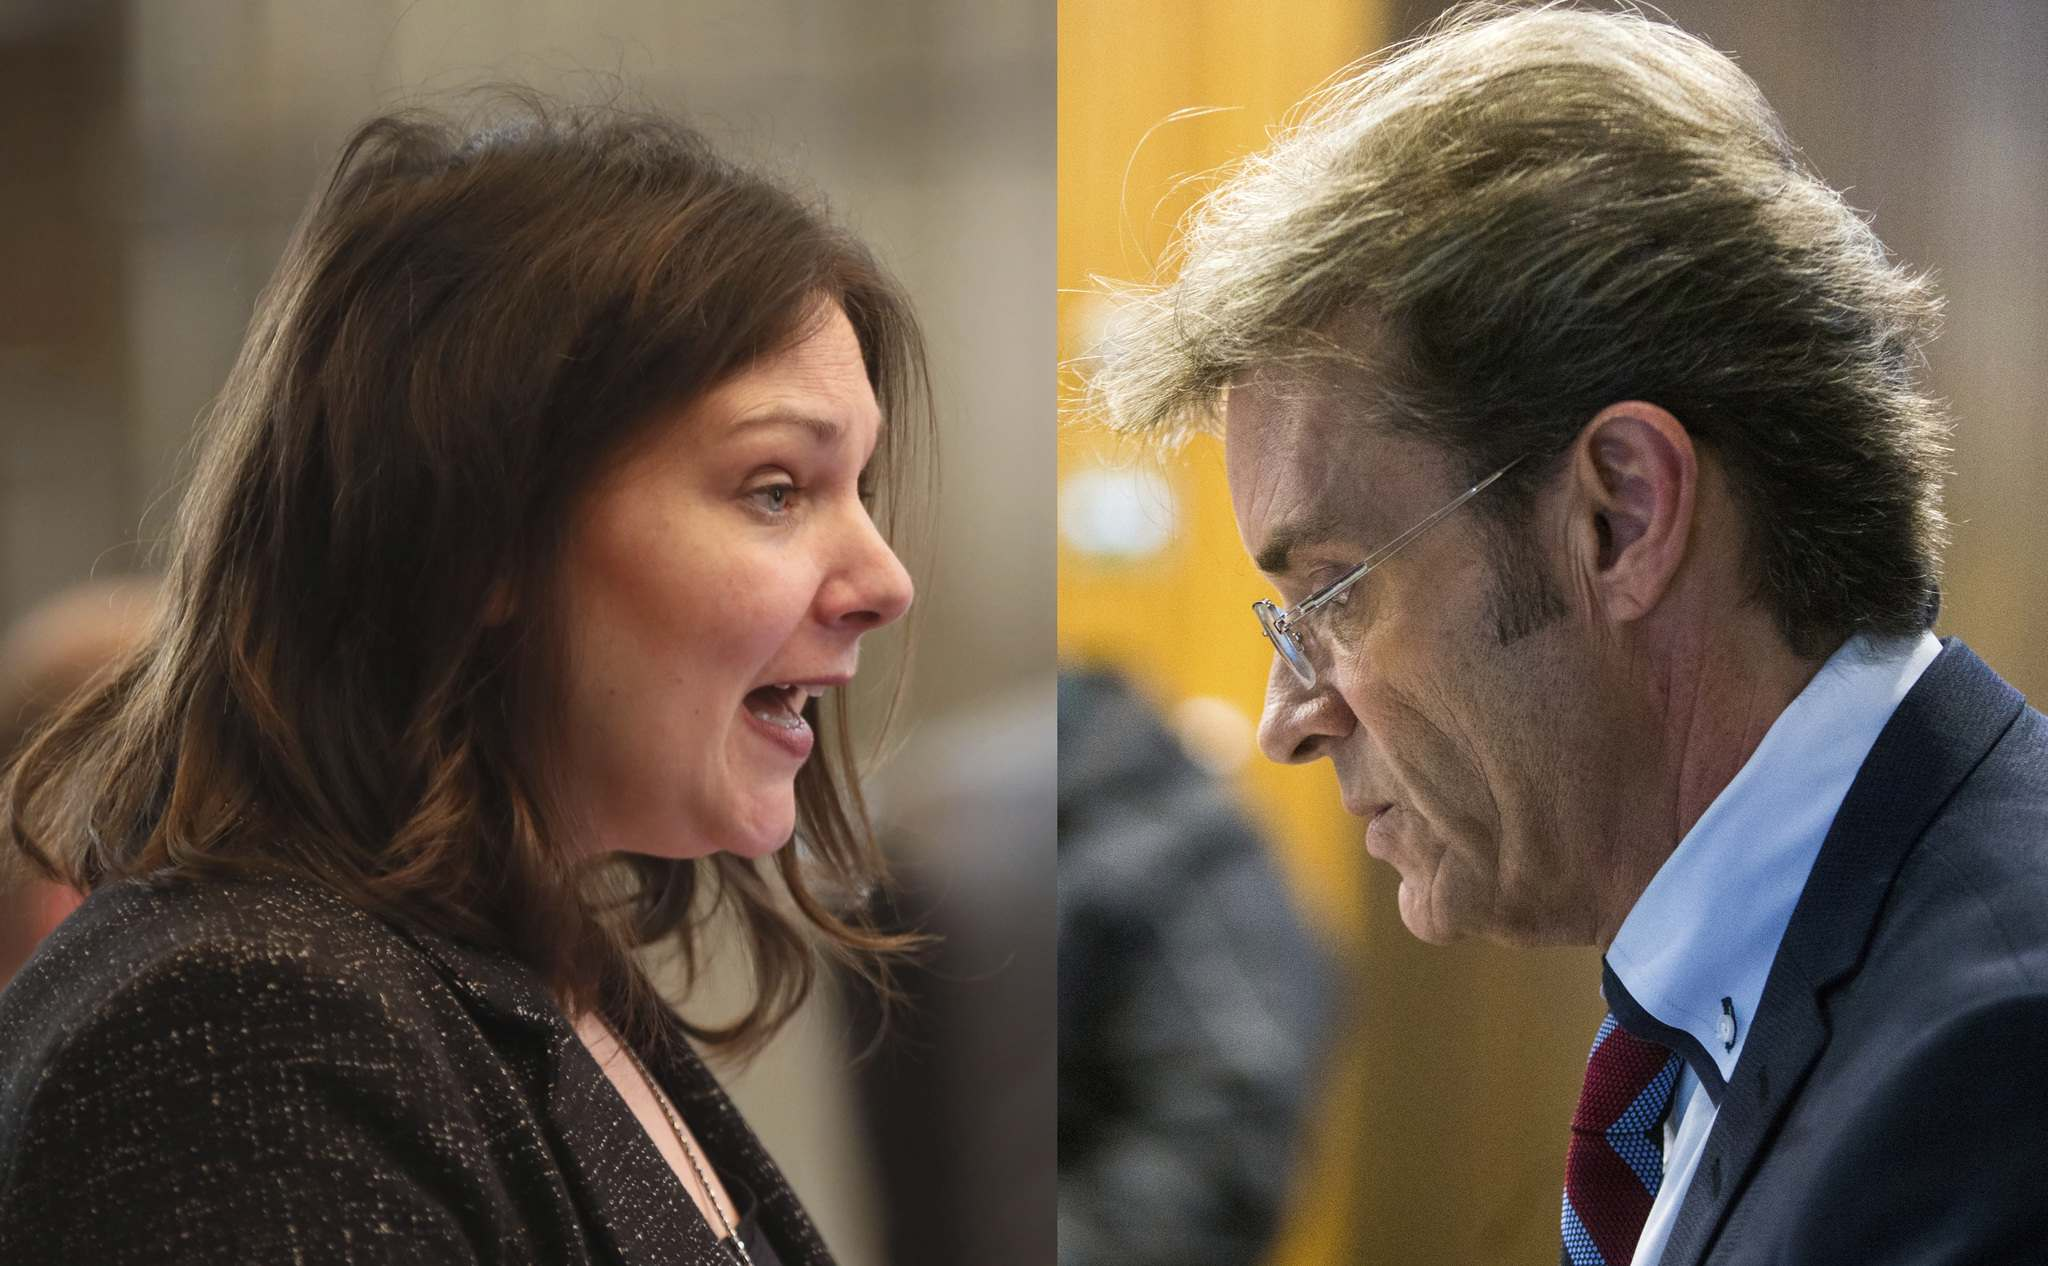 Winnipeg city councillors Sherri Rollins, left, and Kevin Klein got involved in a shouting match Monday, over lingering questions in the city building inspectors scandal.</p>